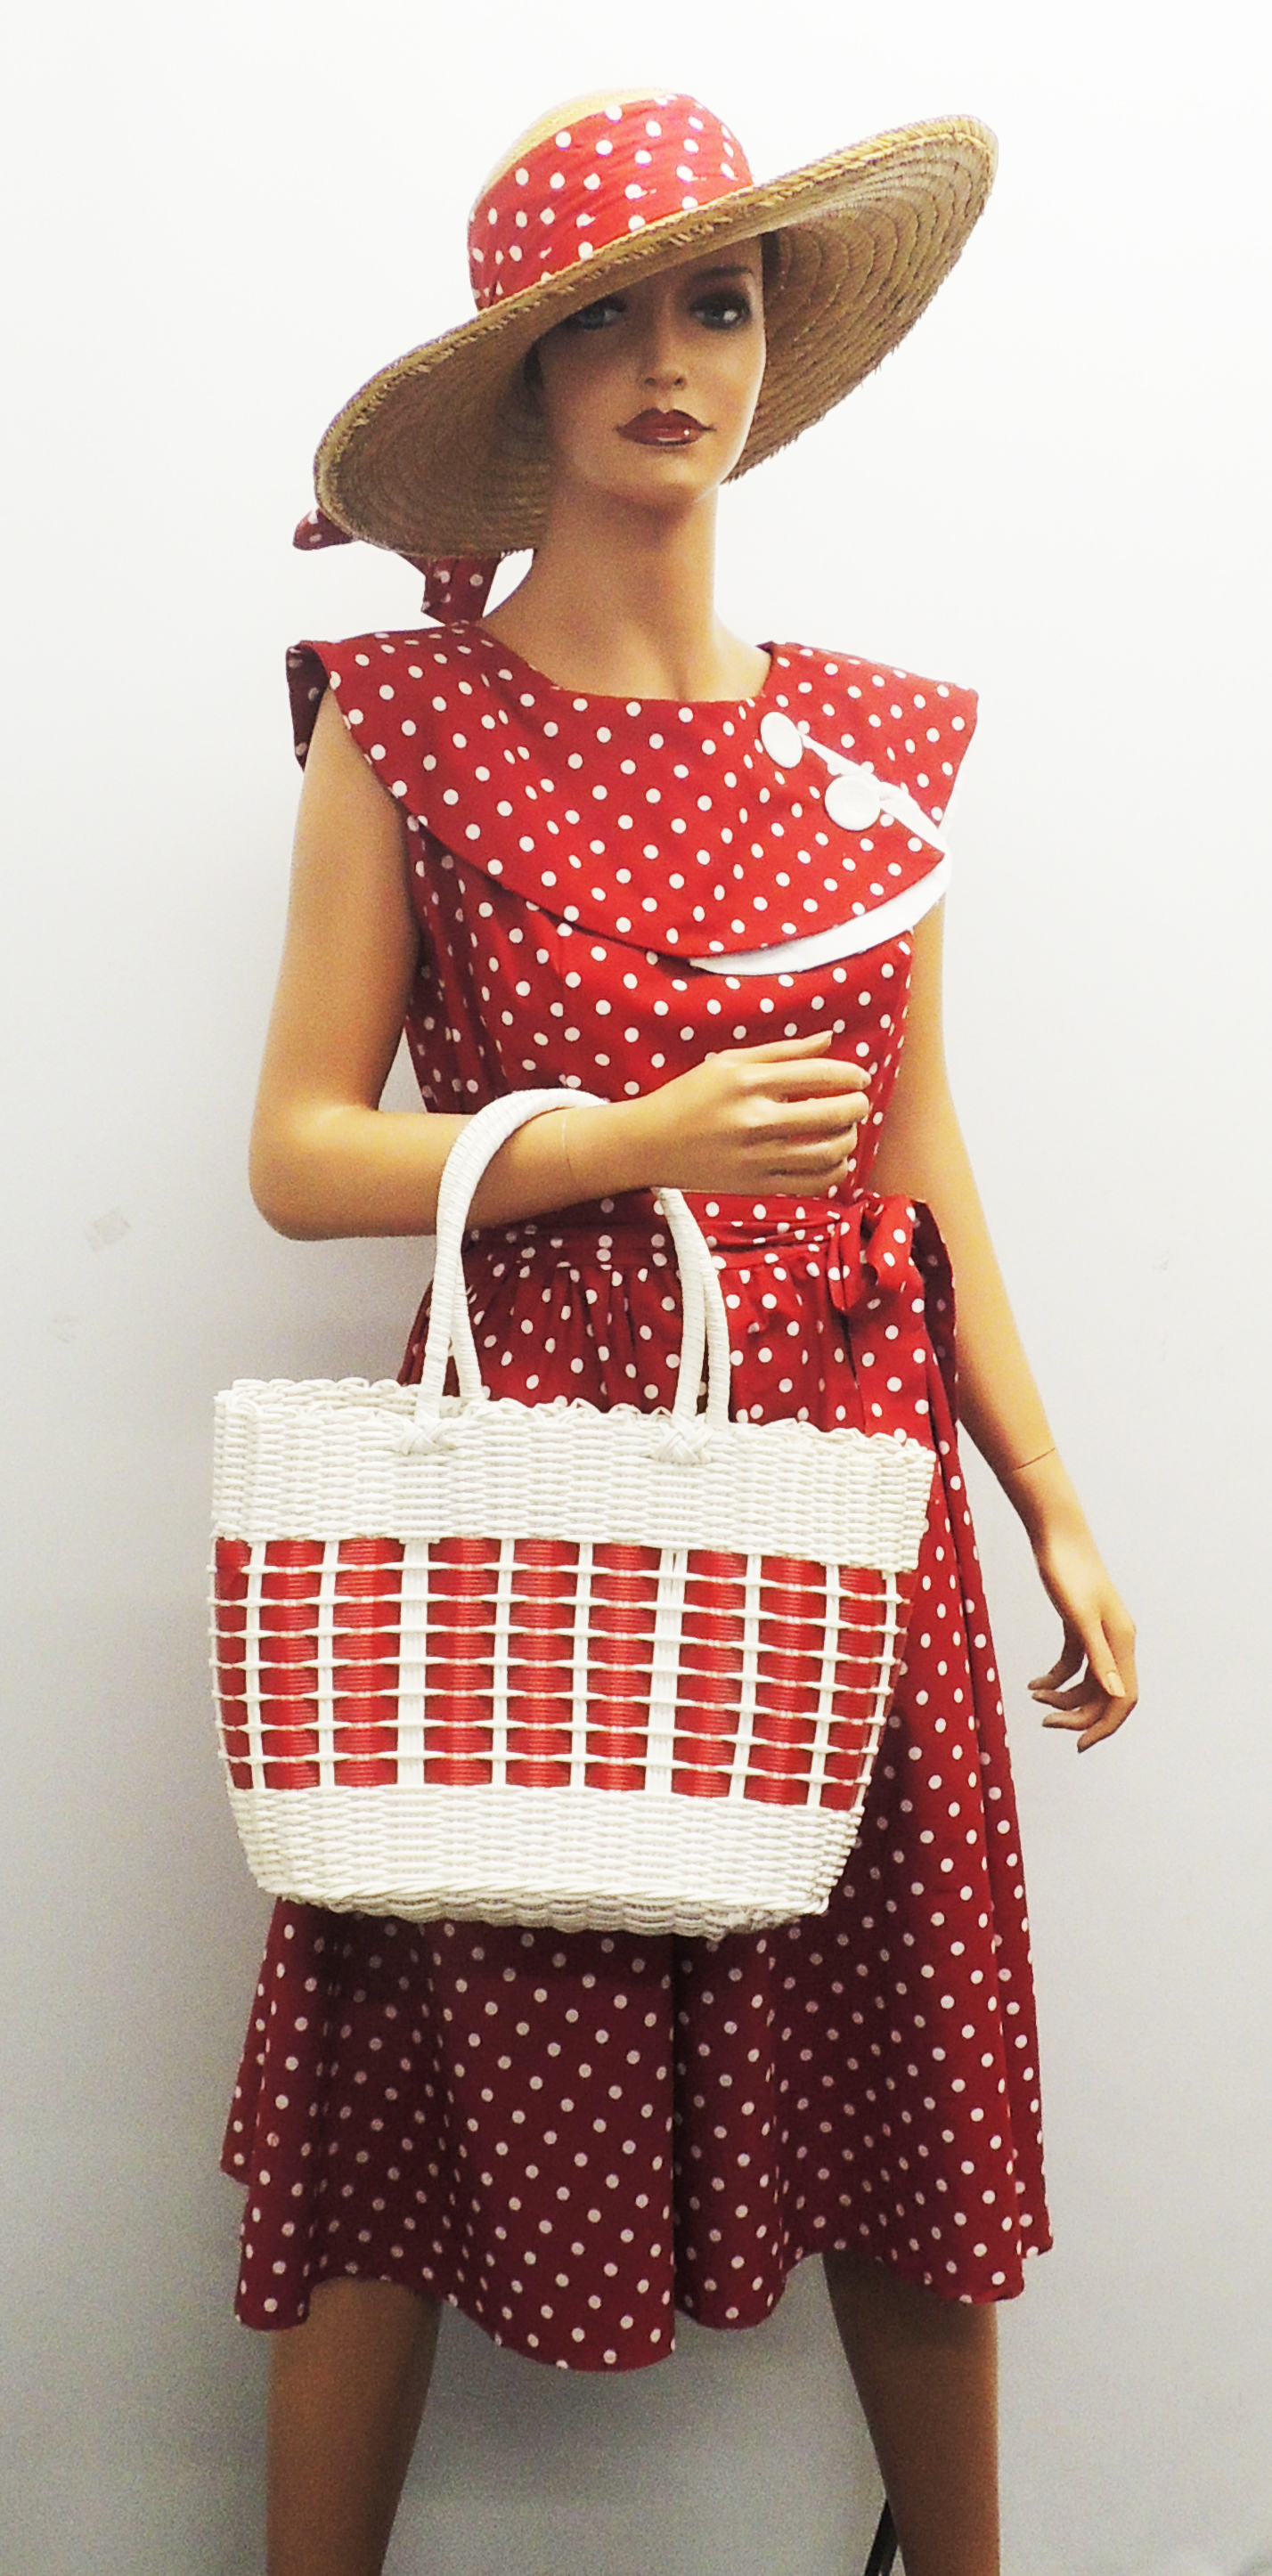 1950s Handbags, Purses, and Evening Bag Styles    New Retro 1940s 50's style White Red Blue Plastic Beach Picnic Shopping Basket $12.99 AT vintagedancer.com